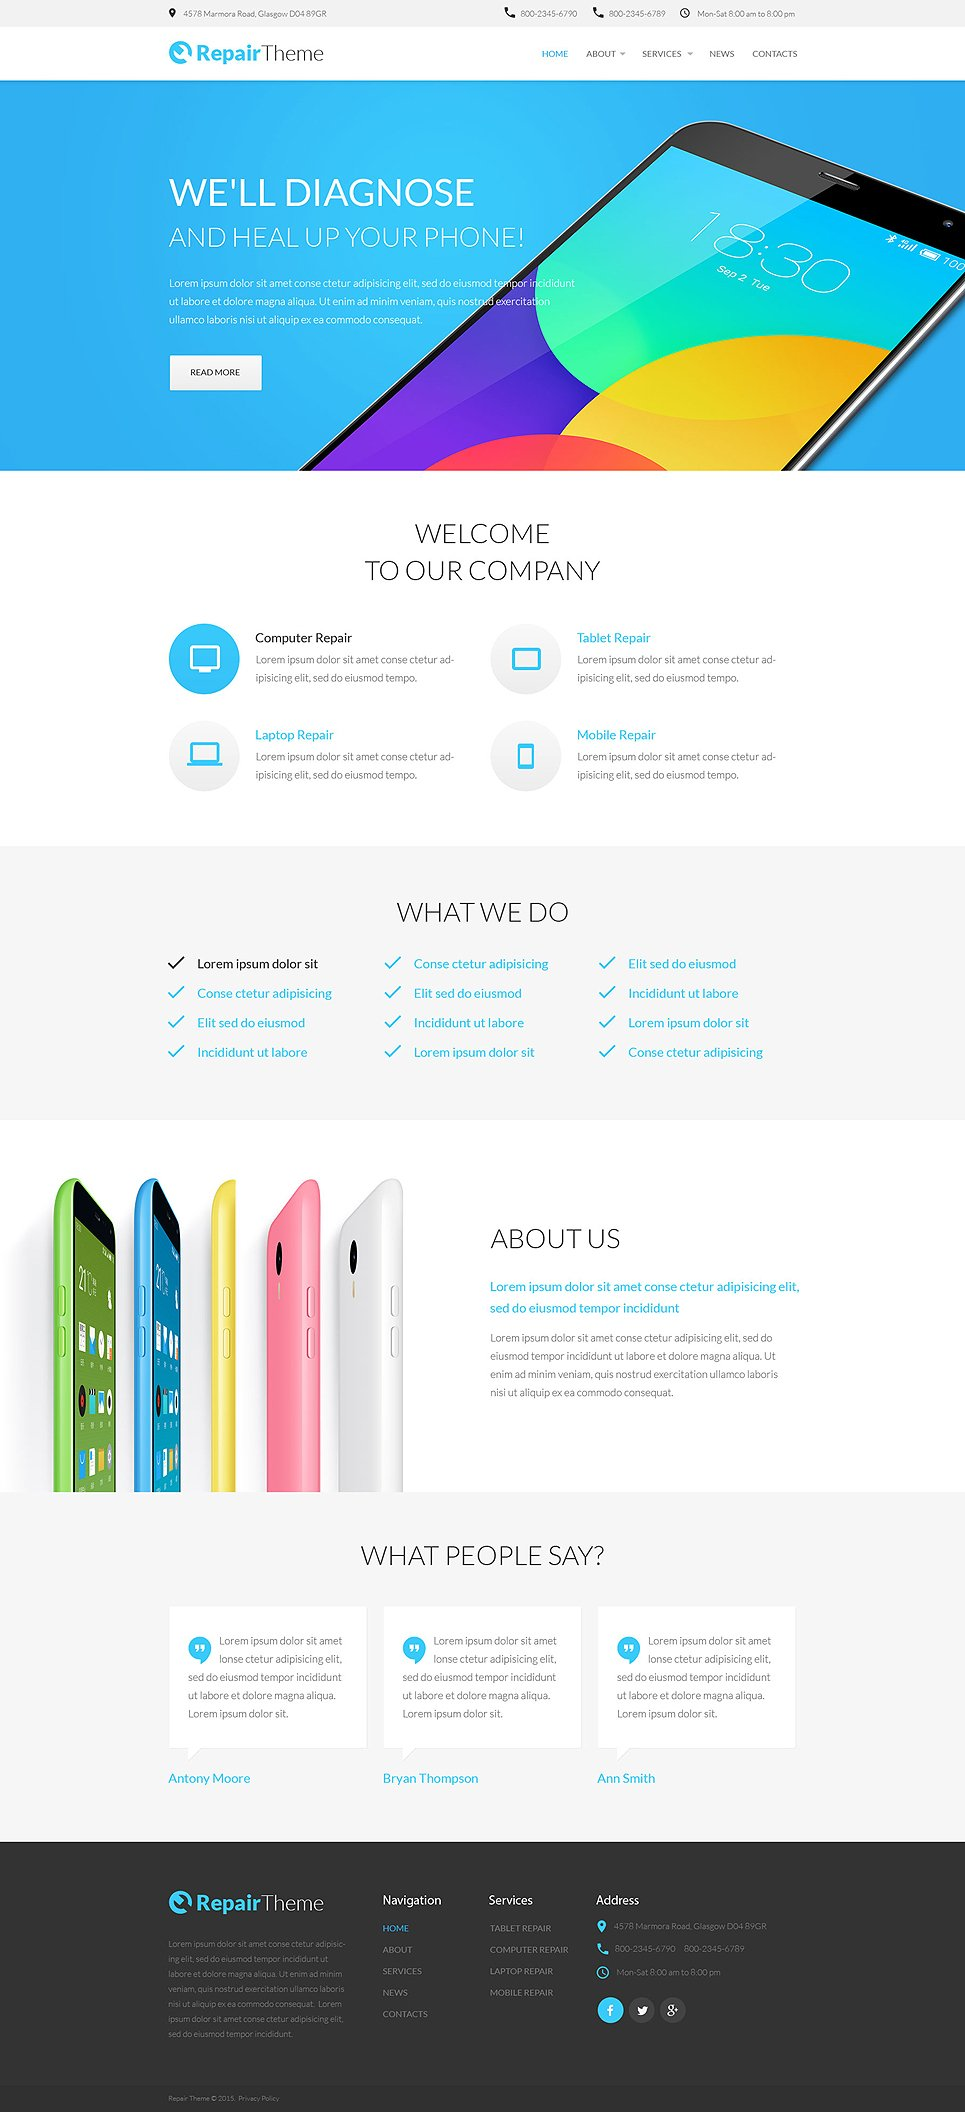 RepairTheme template illustration image